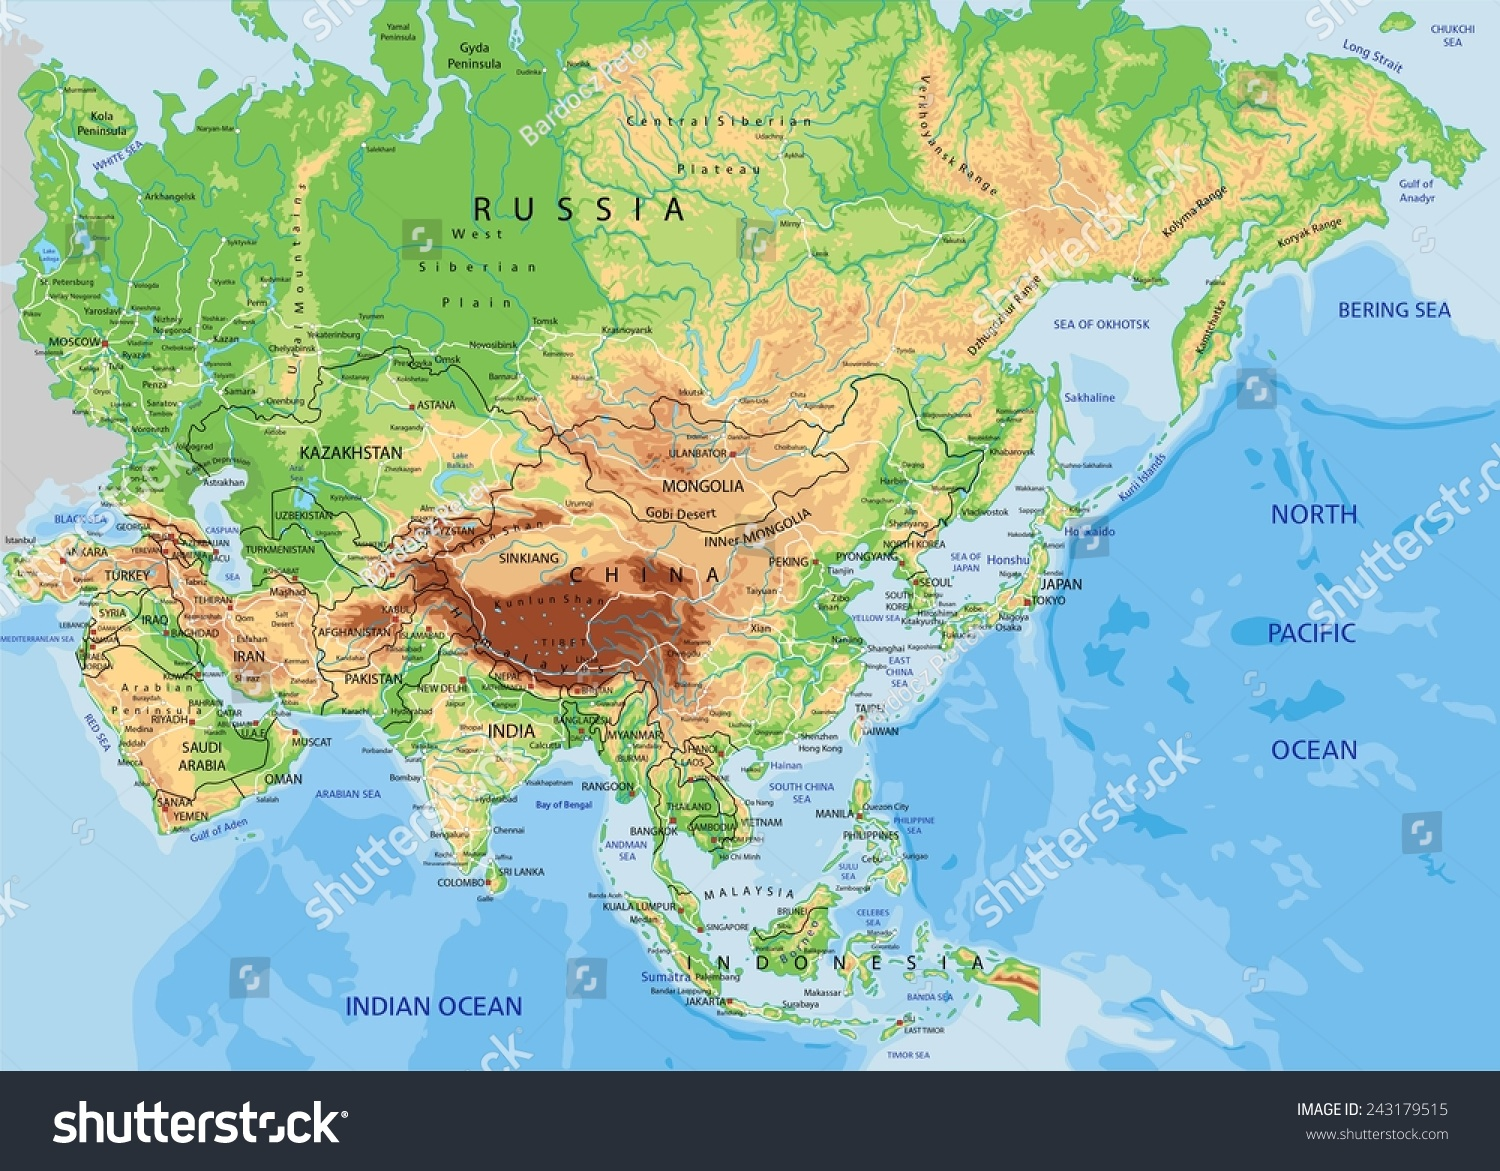 Royaltyfree High Detailed Asia Physical Map With - Asia physical map